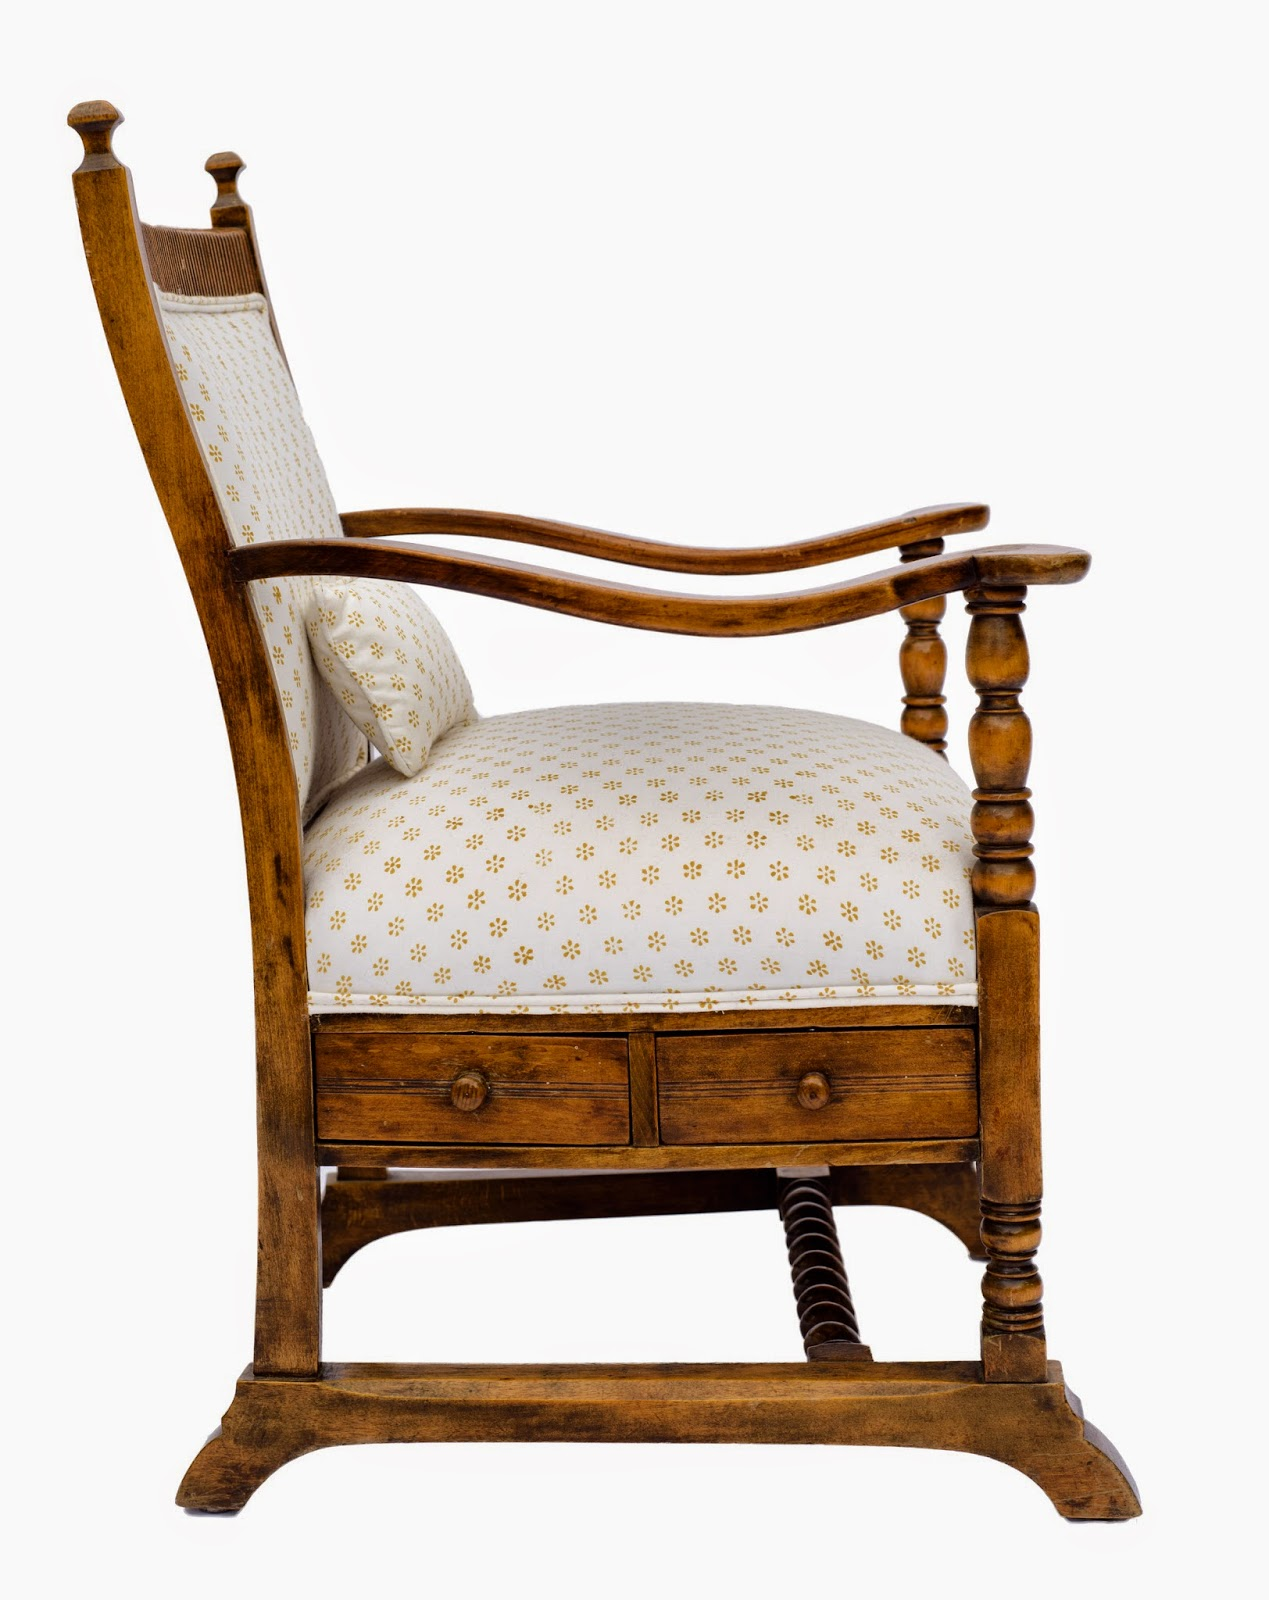 Antique Beech Wood Chair in Les Indiennes